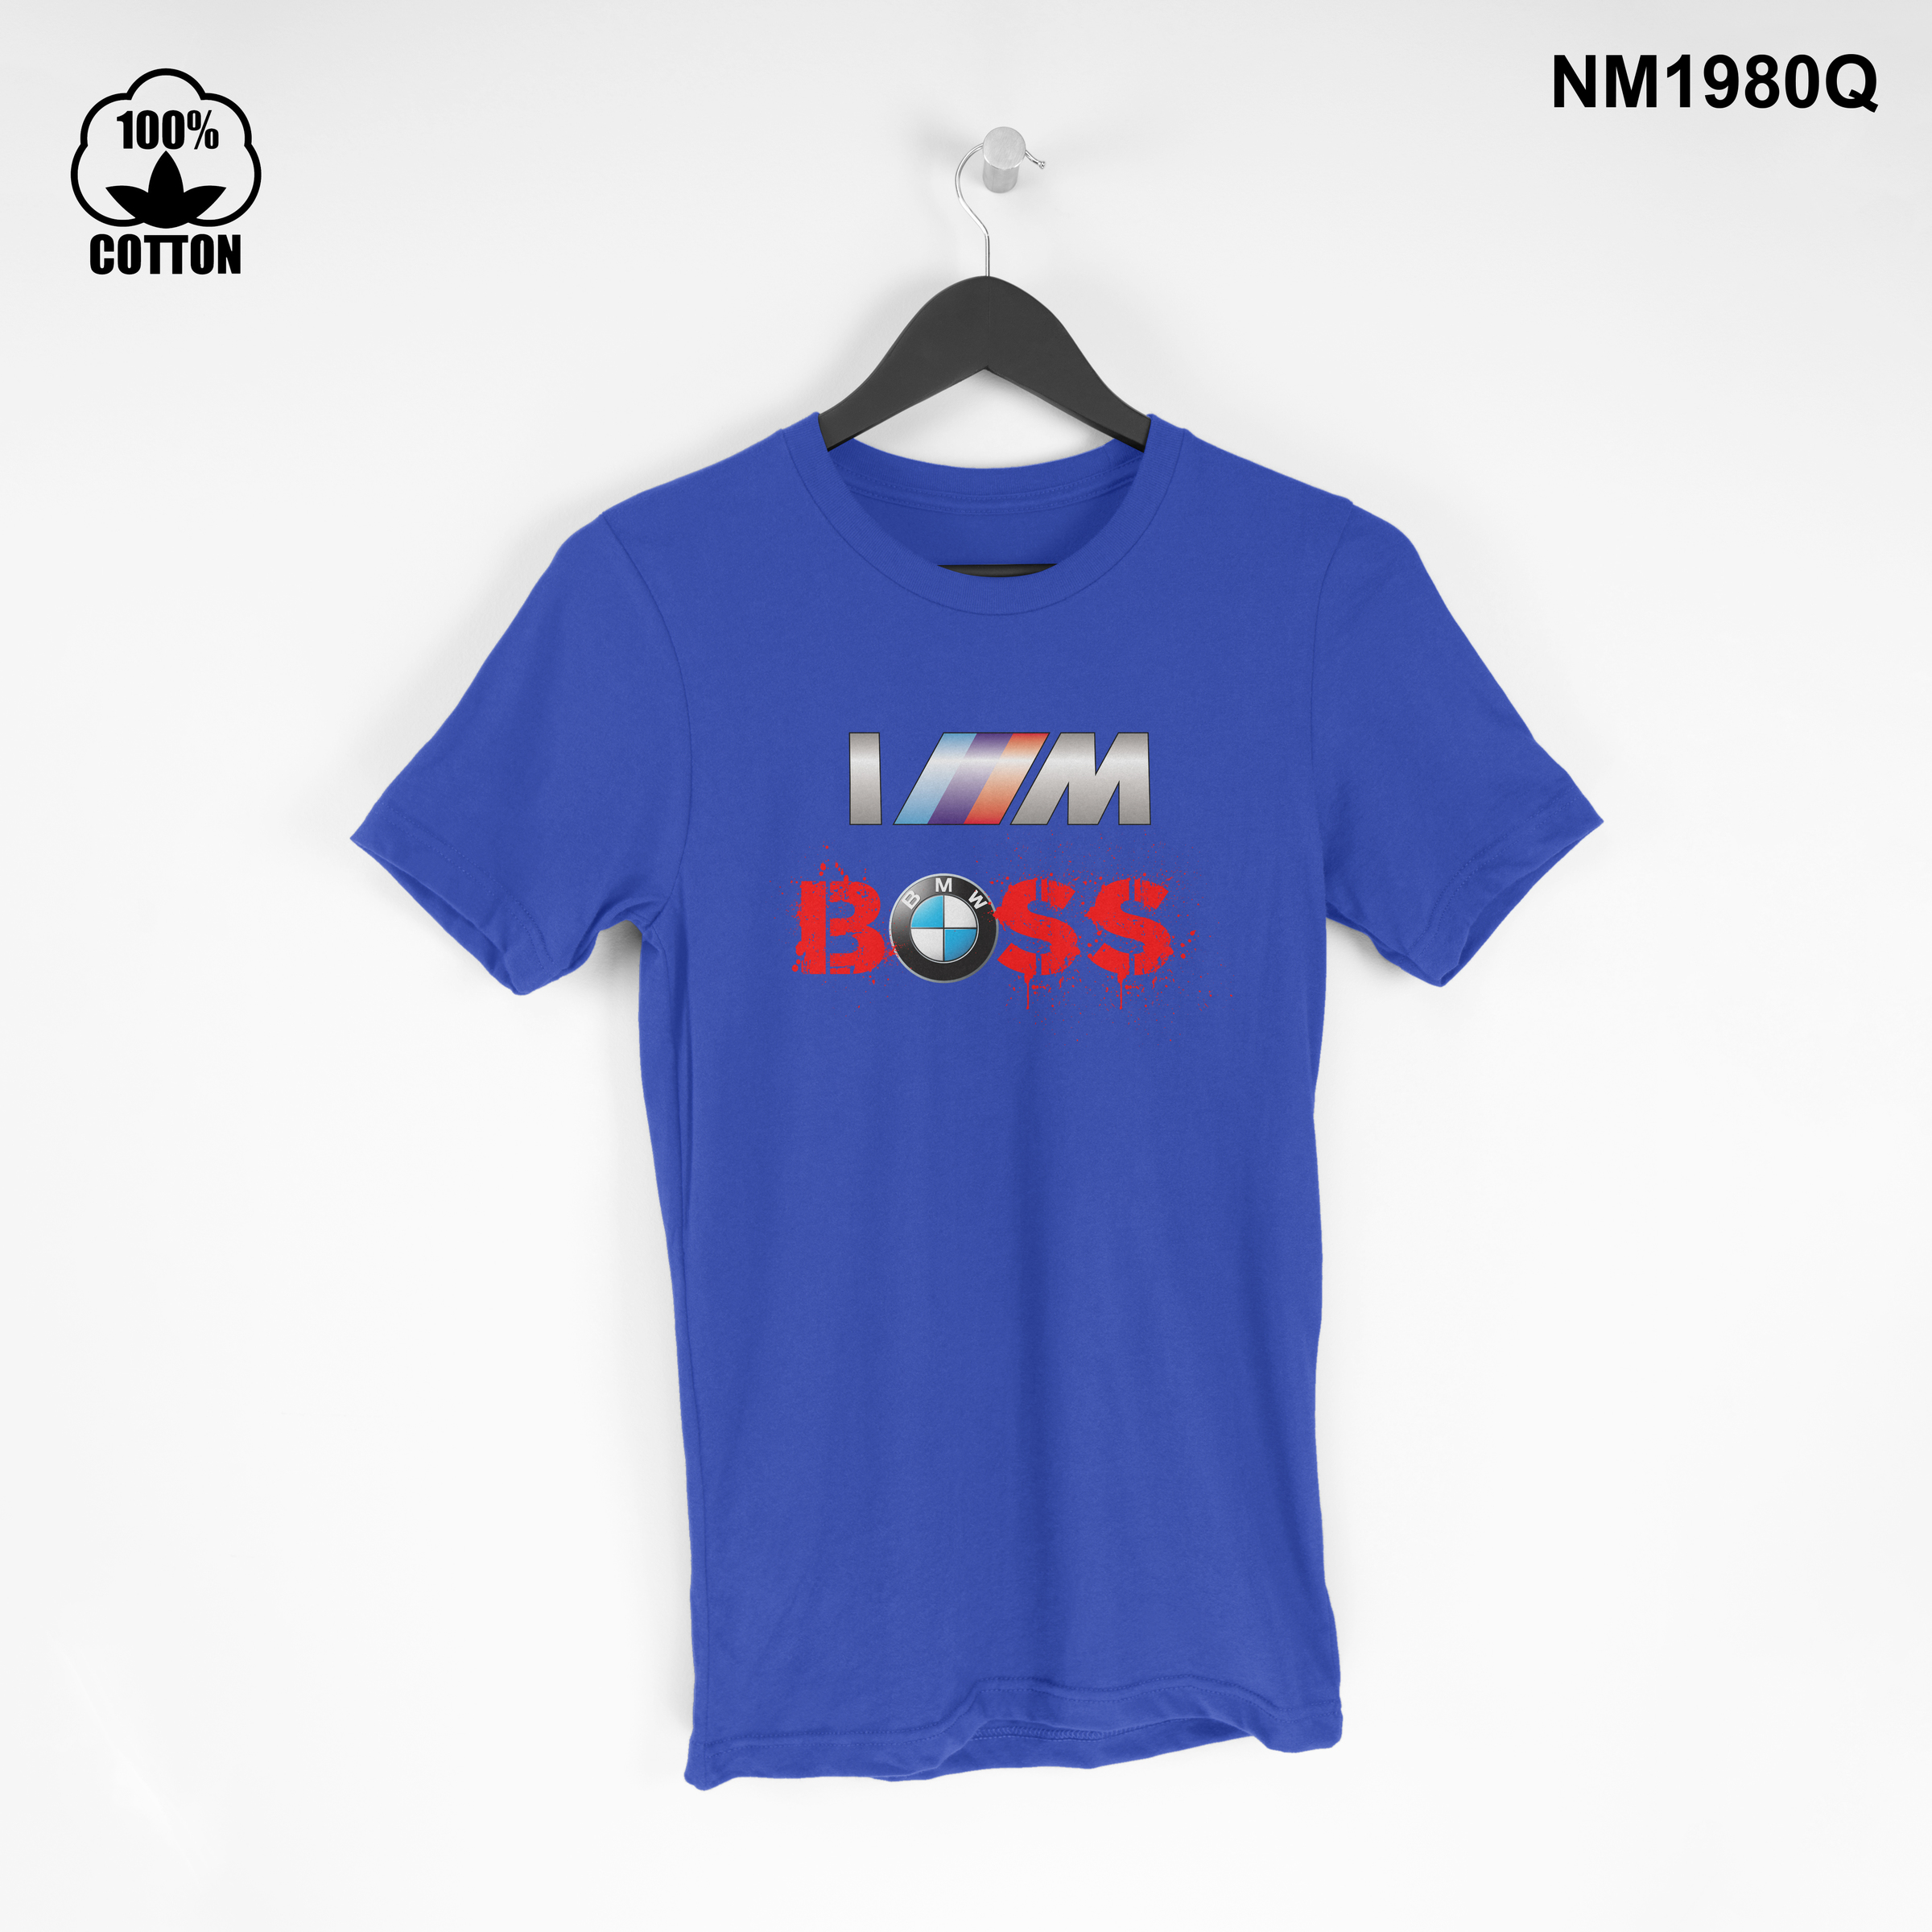 1.42 New Design BMW I M BOSS T Shirt Tee Short Sleeve Unisex dodger blue.jpg